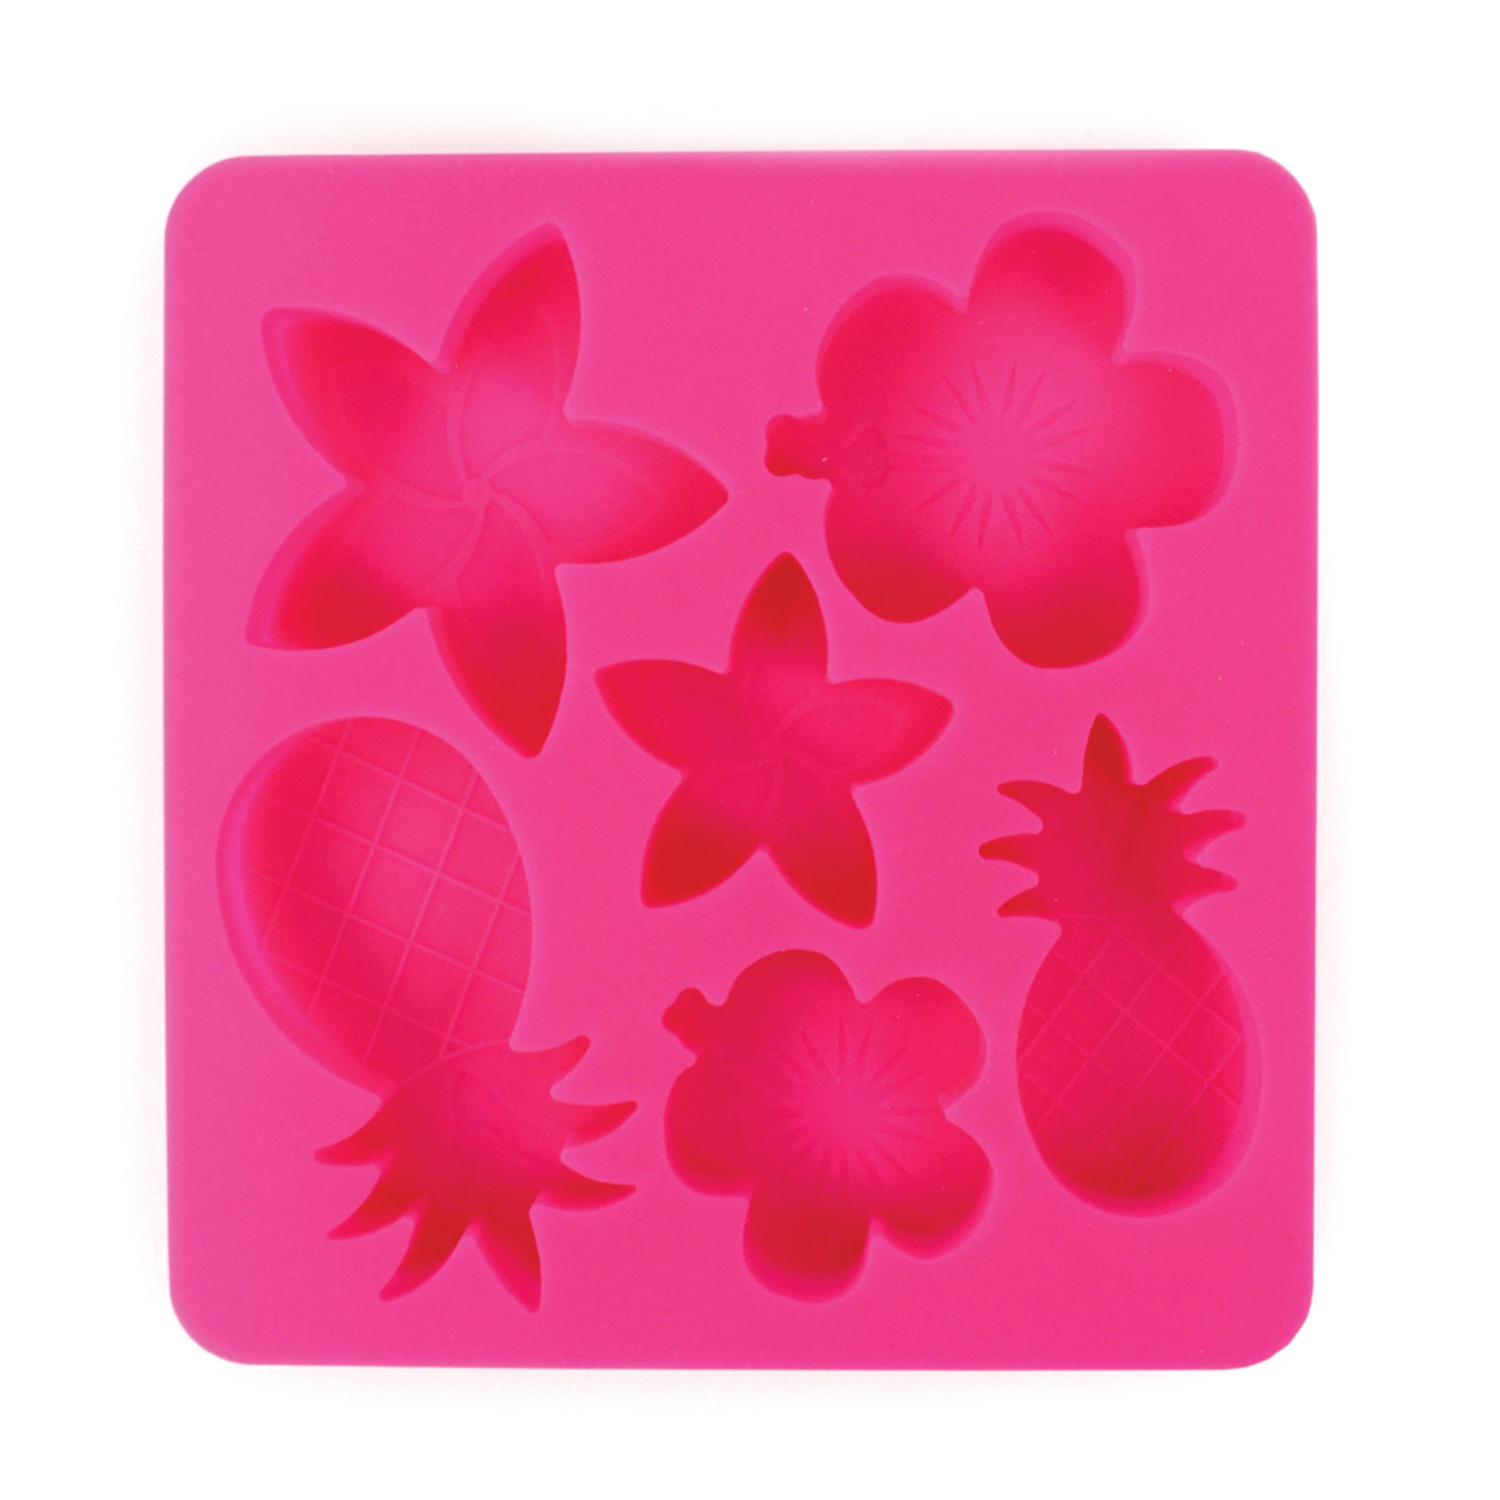 Tropic Chillers Silicone Ice Cube Tray - Beach Themed Shaped Ice Cubes